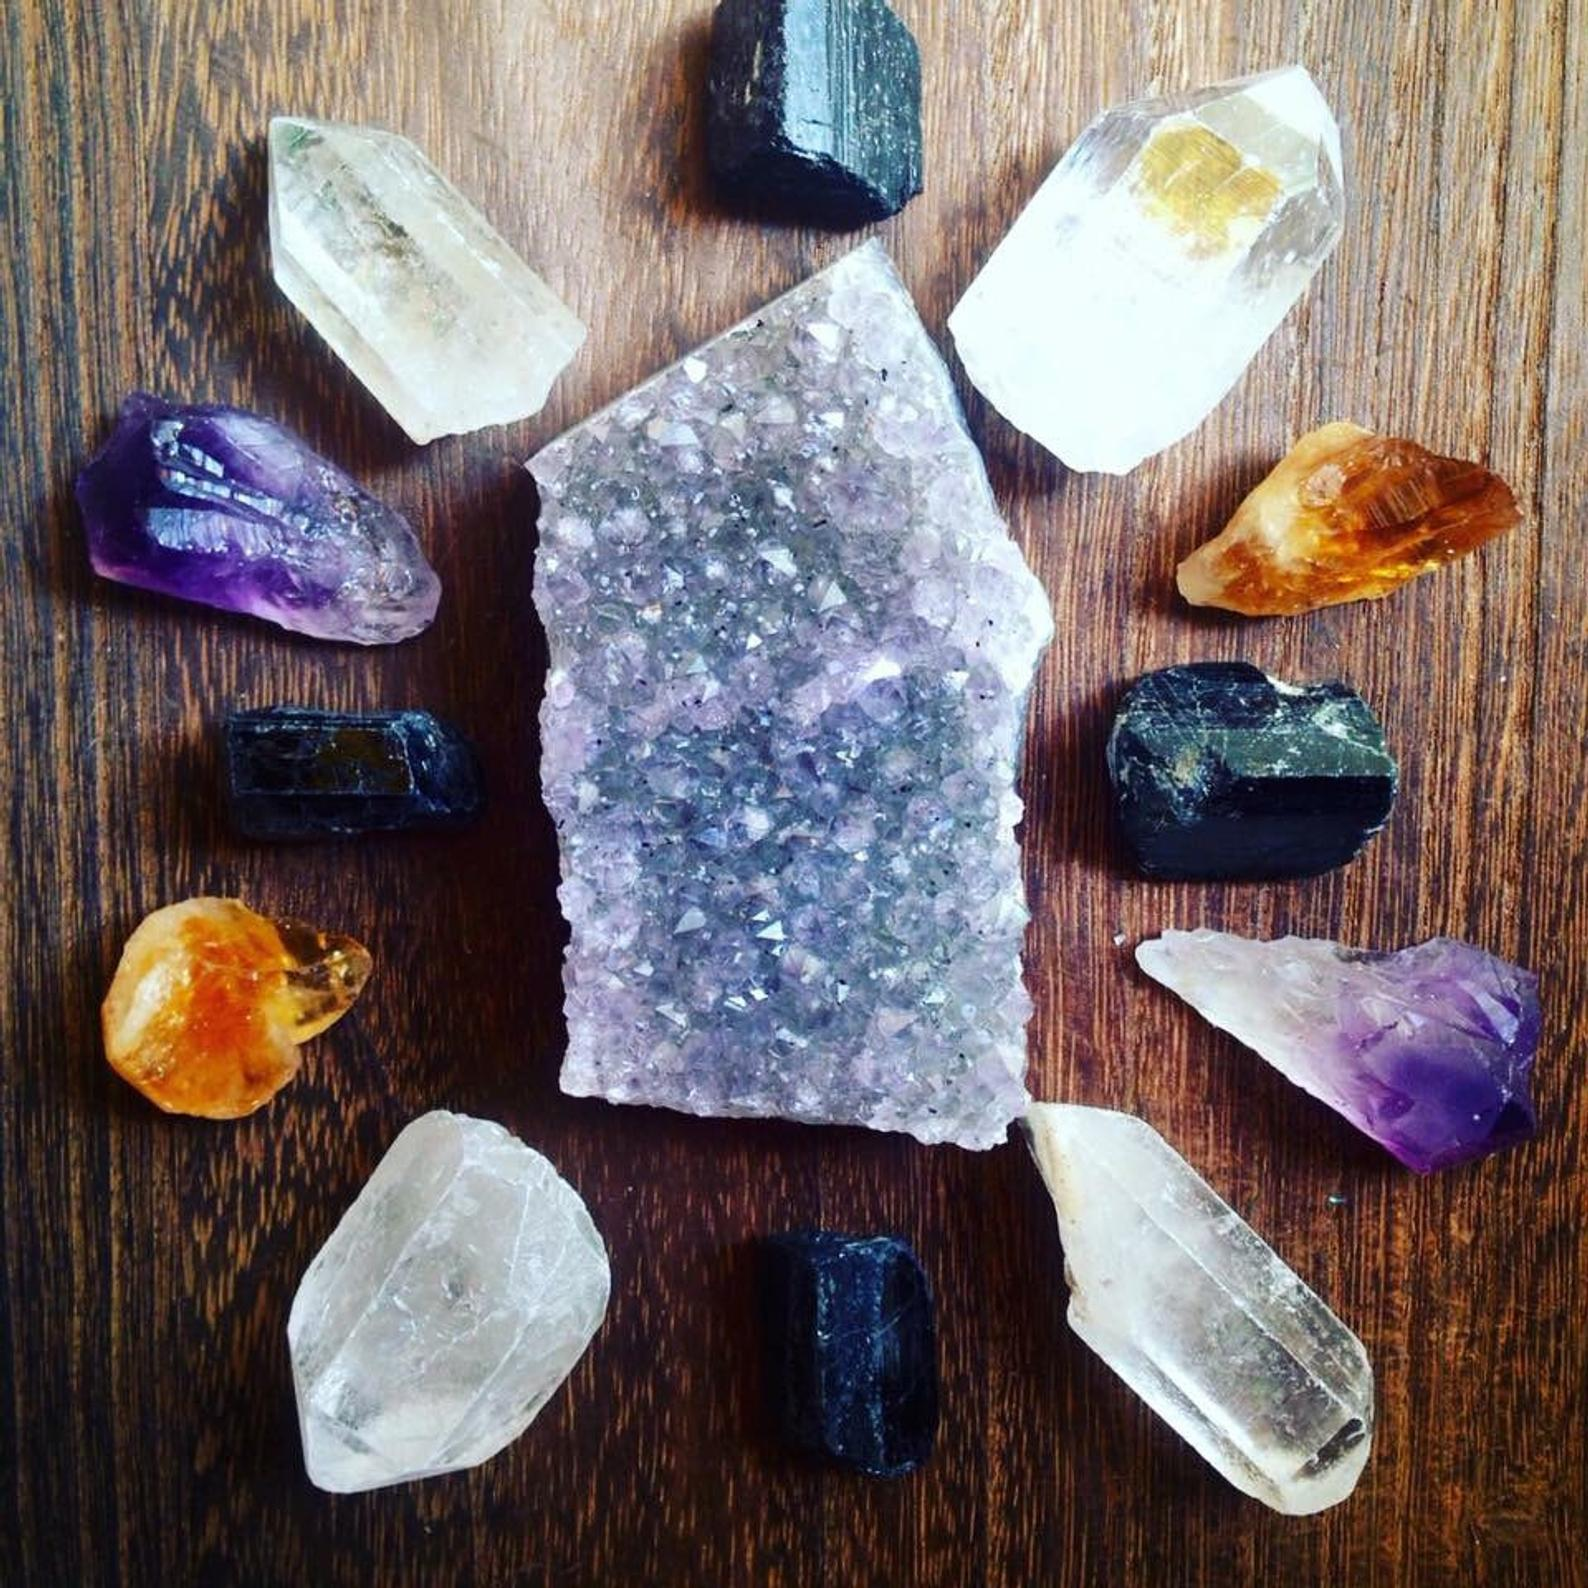 Raw Crystal Healing Crystals and Stones Collection By Crystals N Creations